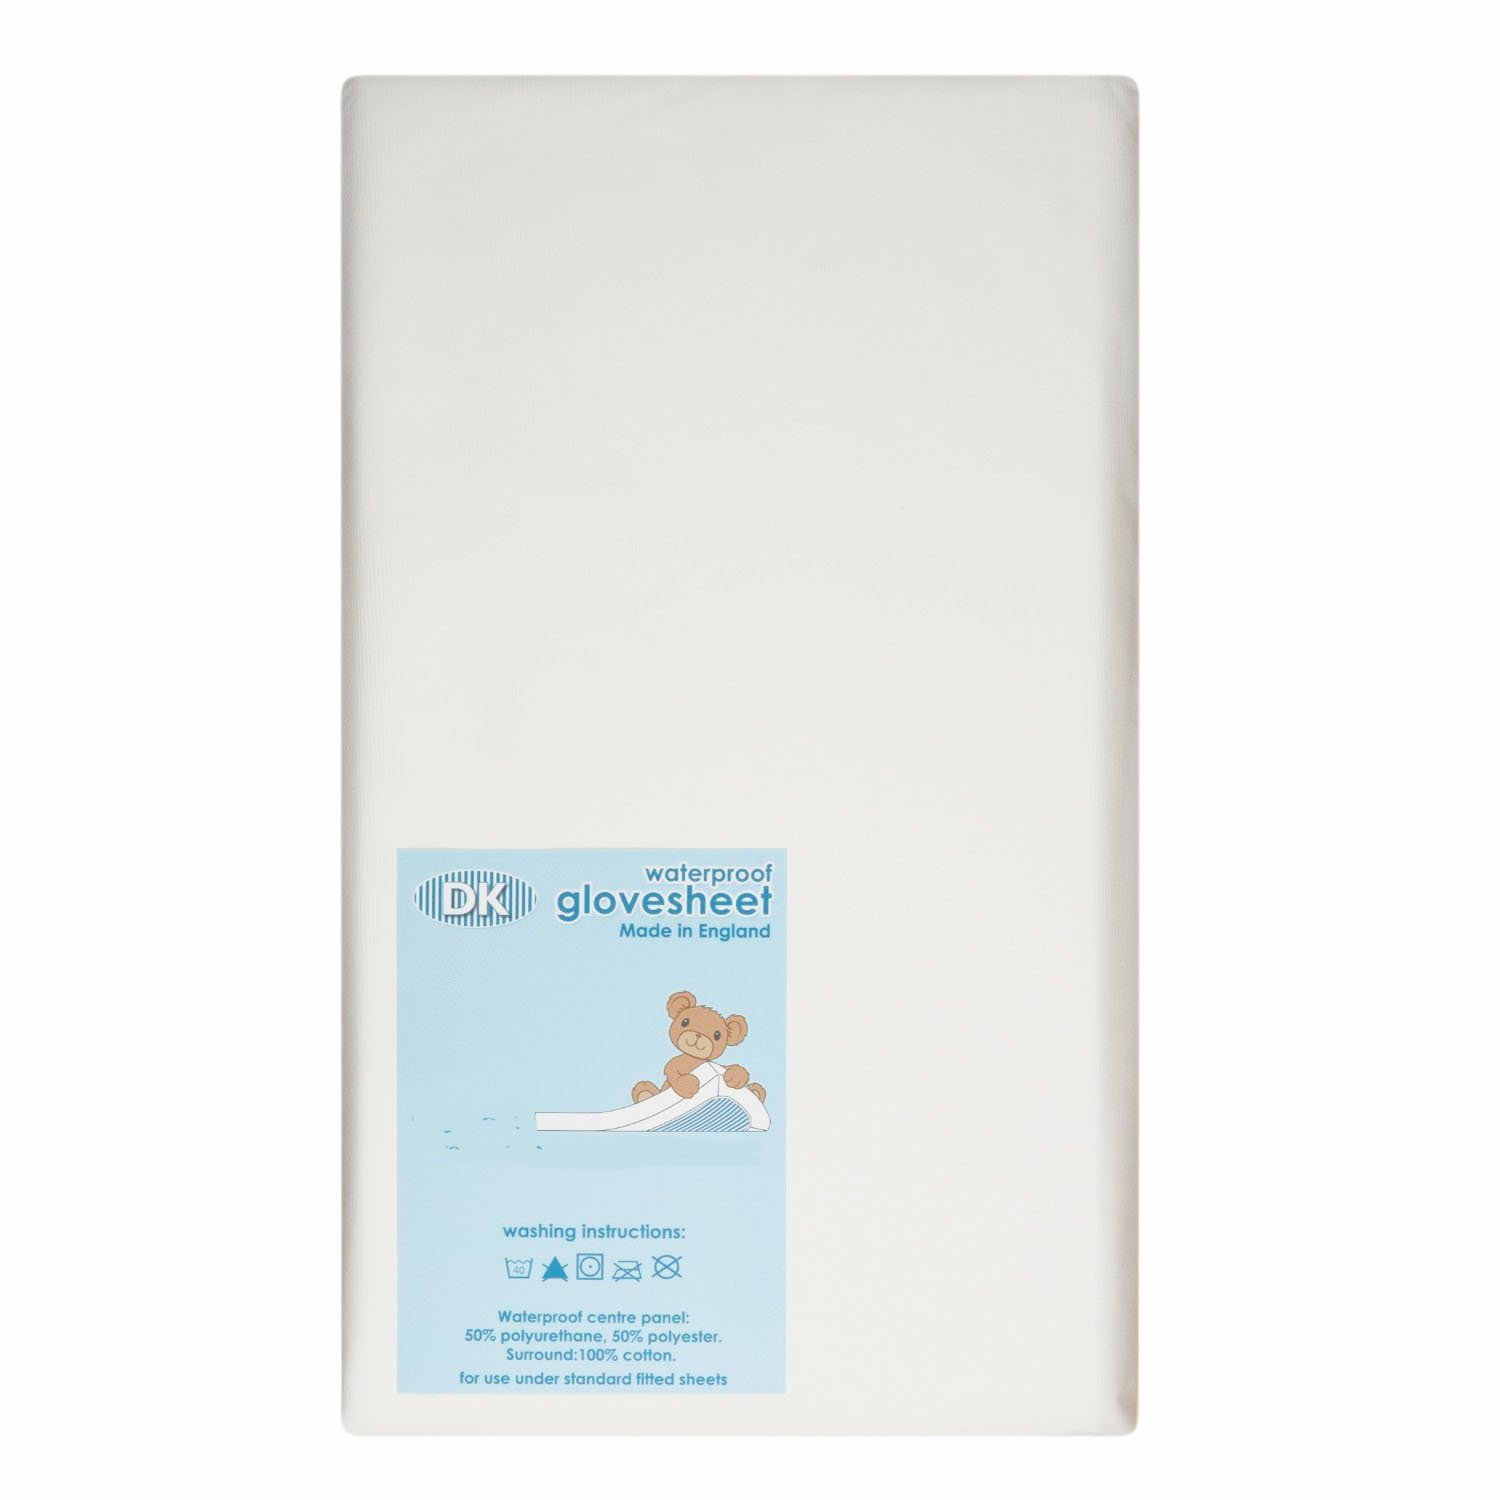 Waterproof Soft Cotbed 140x70cm Fitted Sheet - 100% Cotton Surround With Waterproof Polyurethane Centre Panel - HIGH QUALITY BABY best BUYS BBB-Fitted CB140X70WP